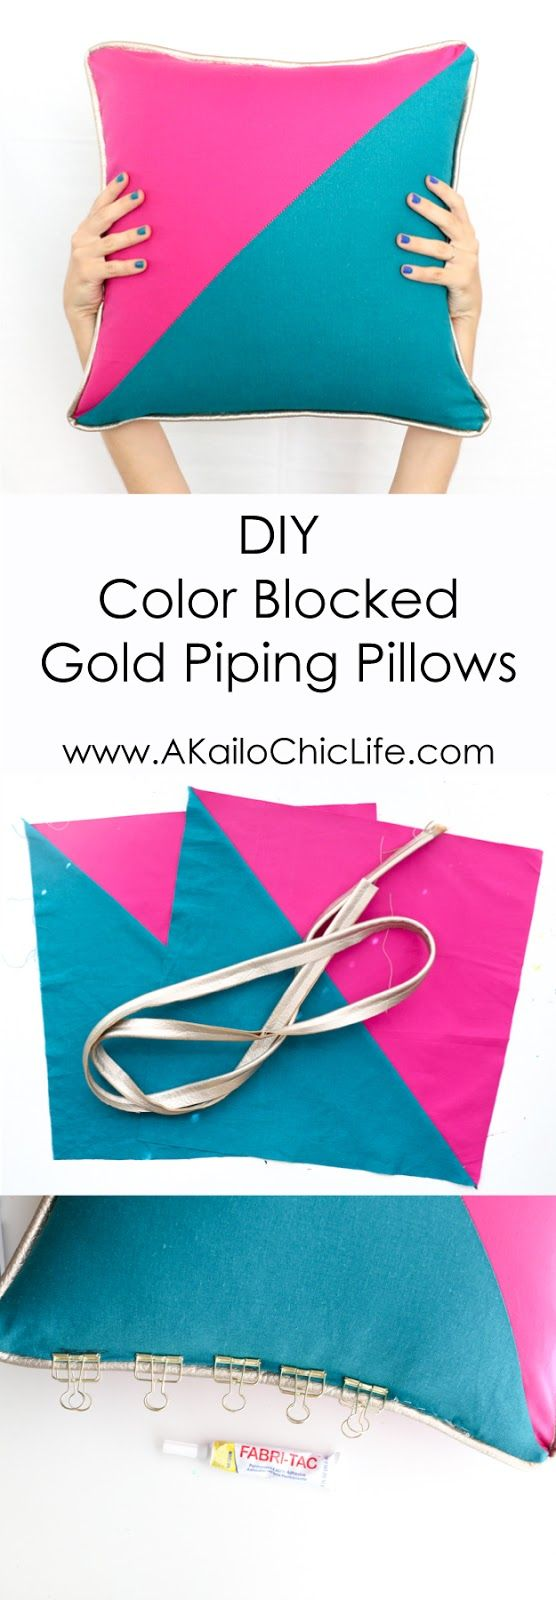 Sew It - Color Blocked Triangle Pillows